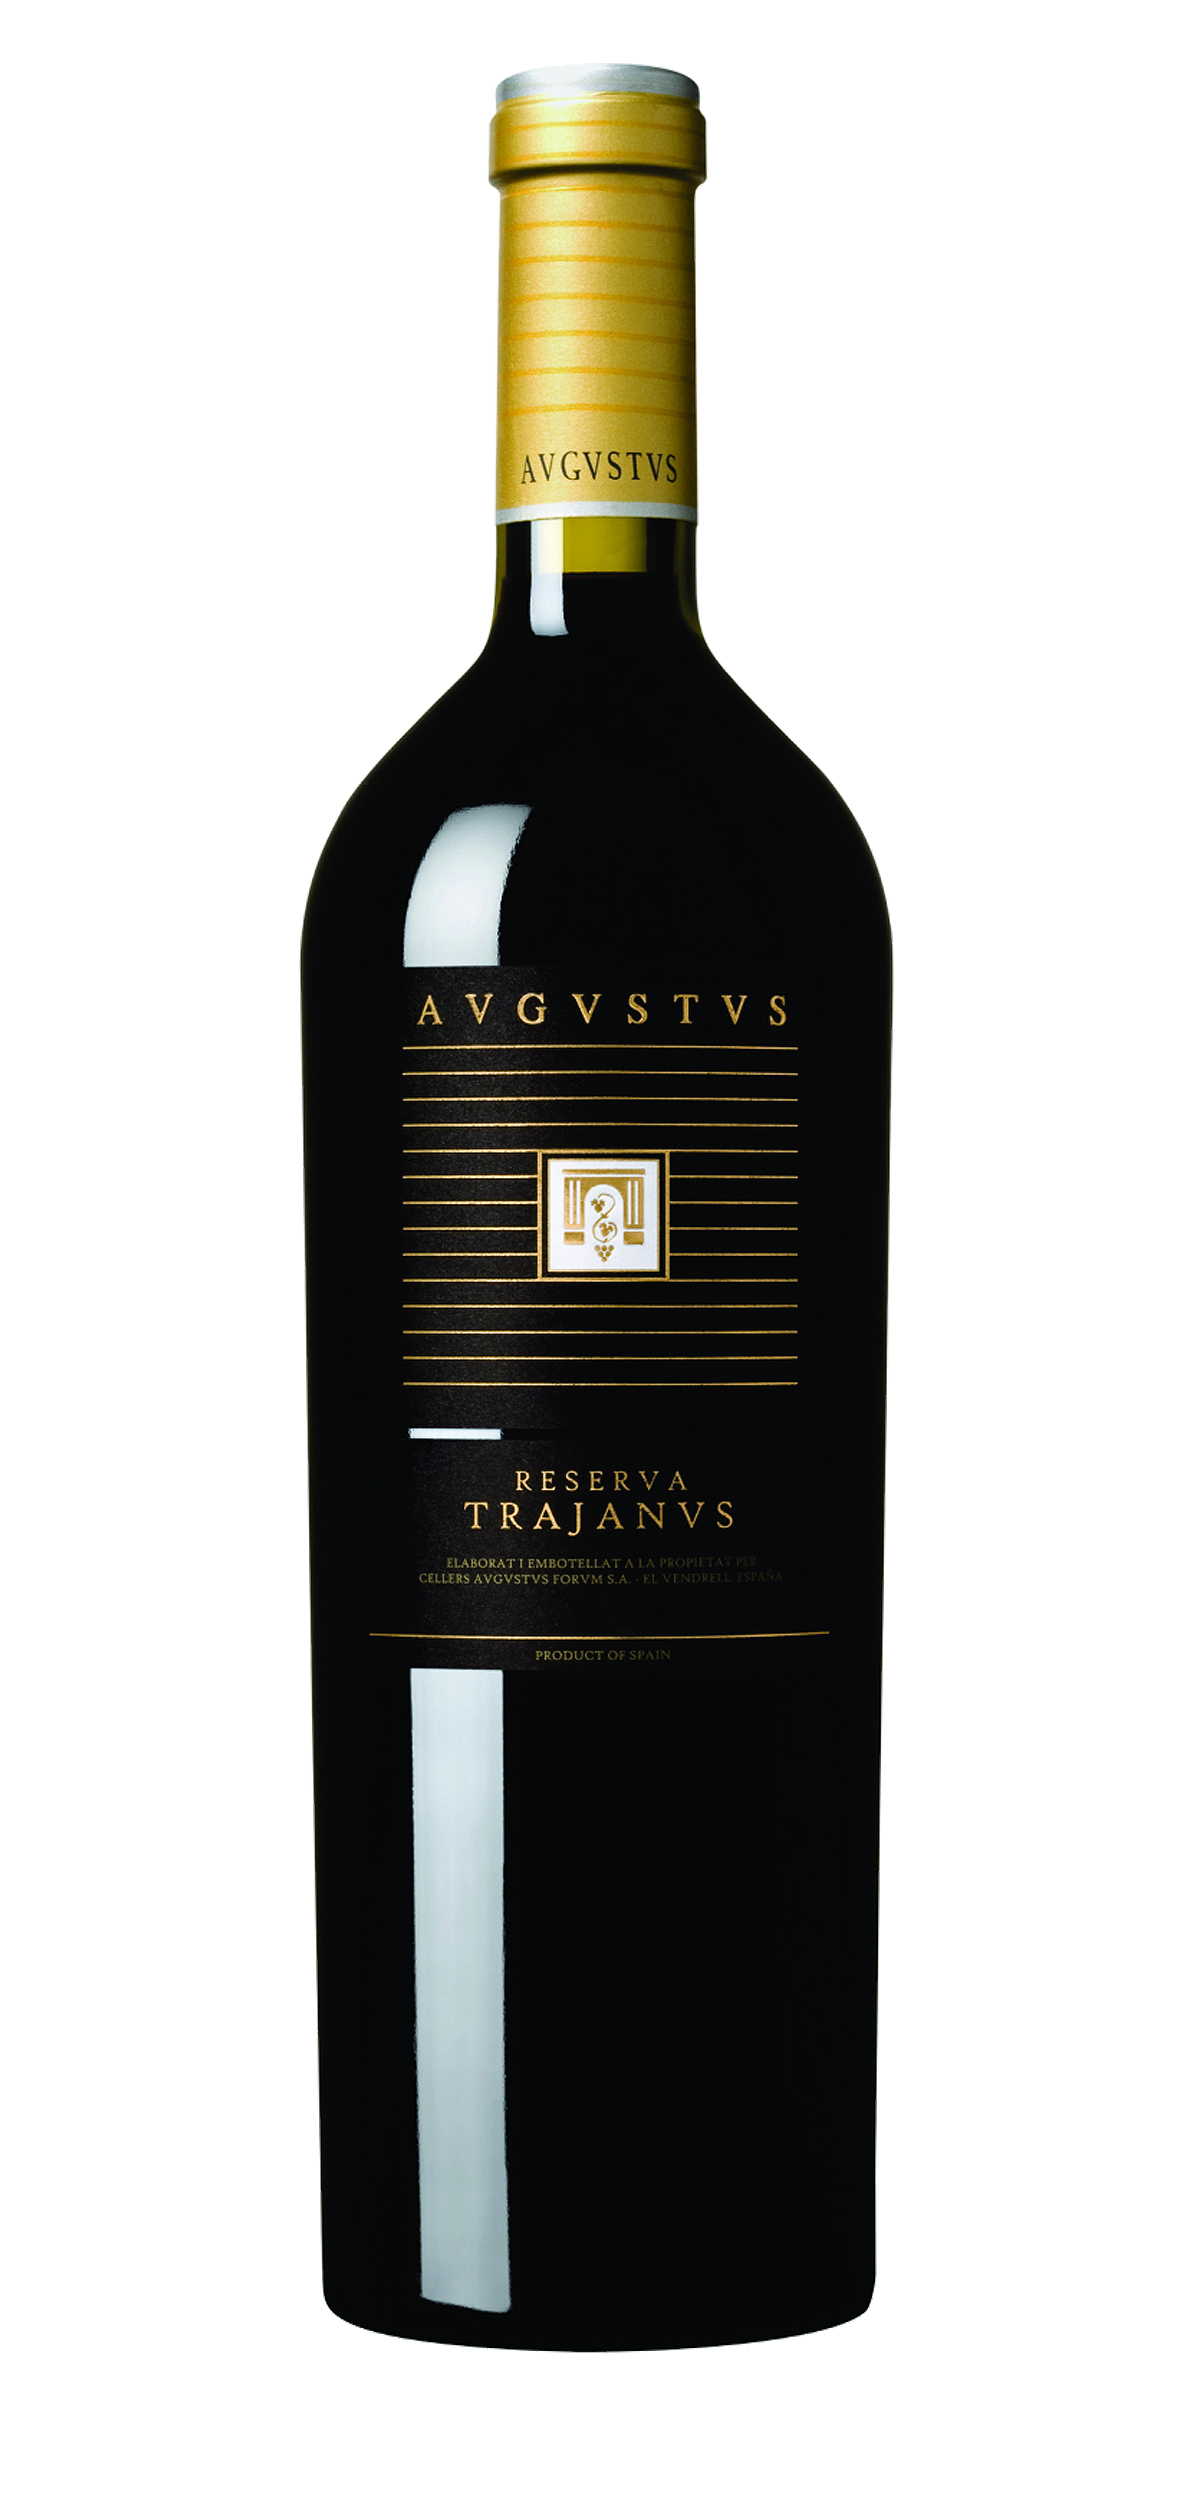 Trajanus wine bottle design